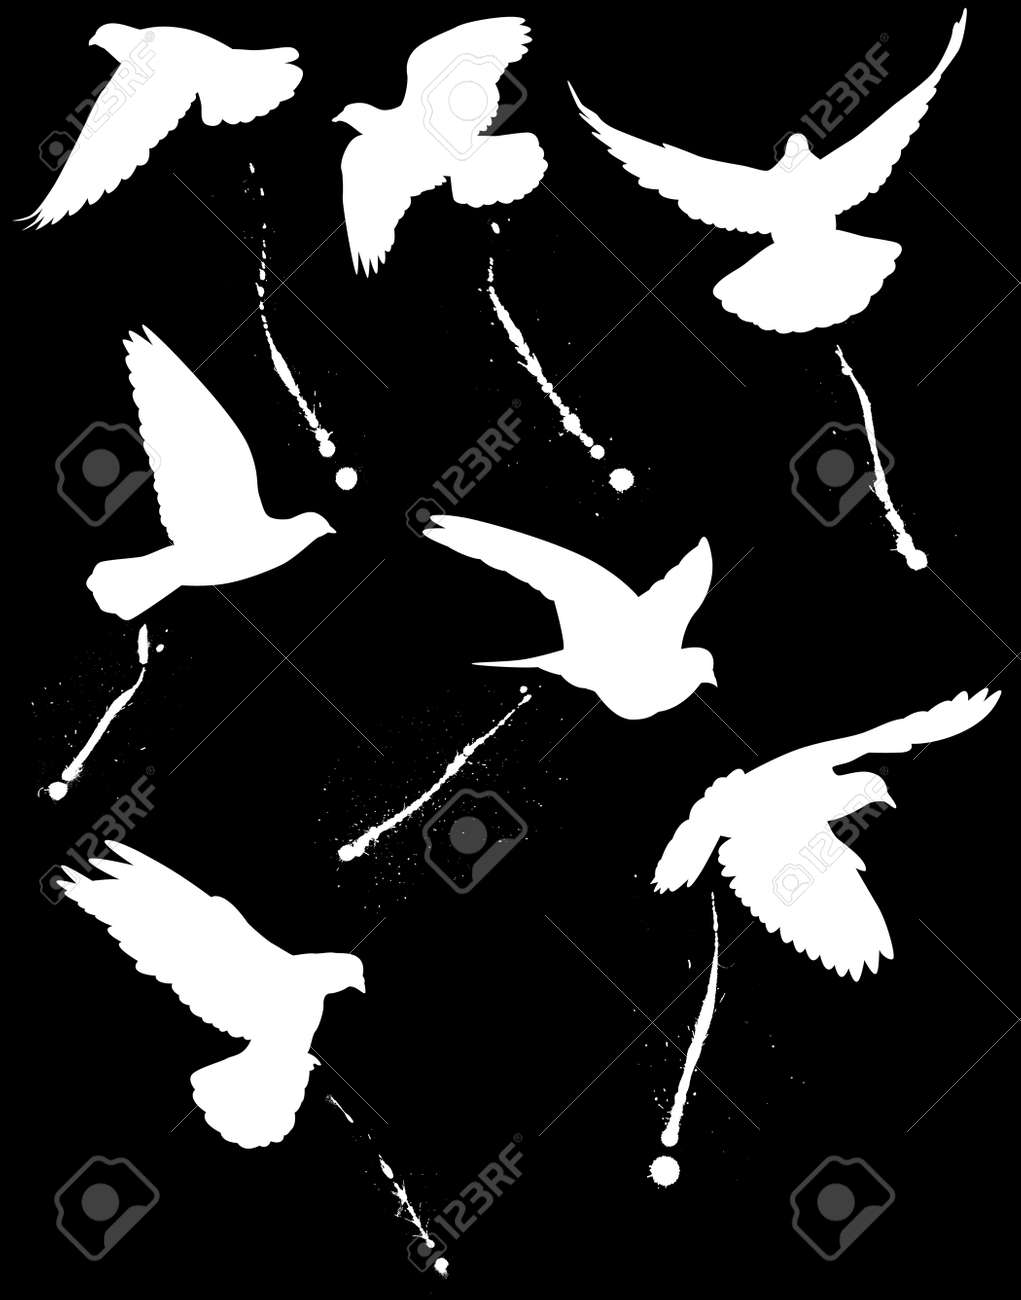 Silhouettes of flying pigeons and their droppings Stock Vector - 6409175